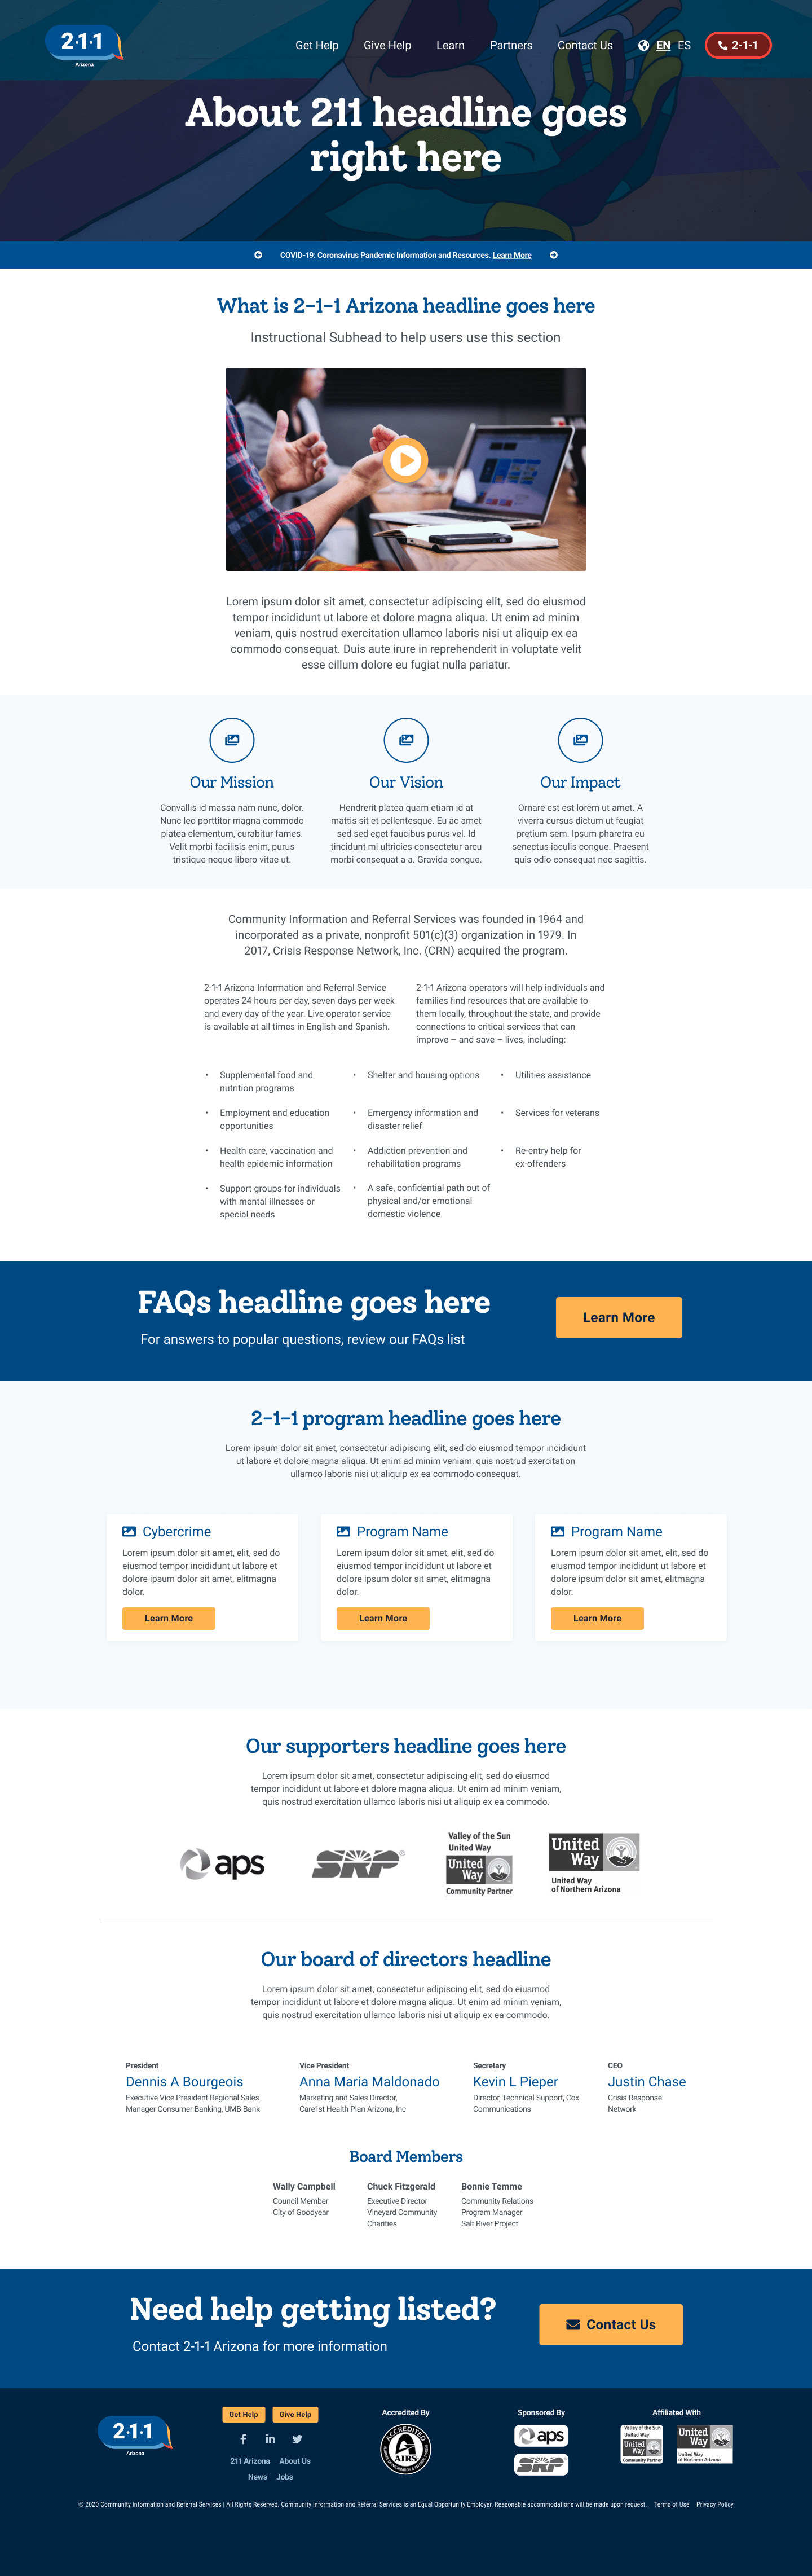 An image of the 211 Arizona about page redesign